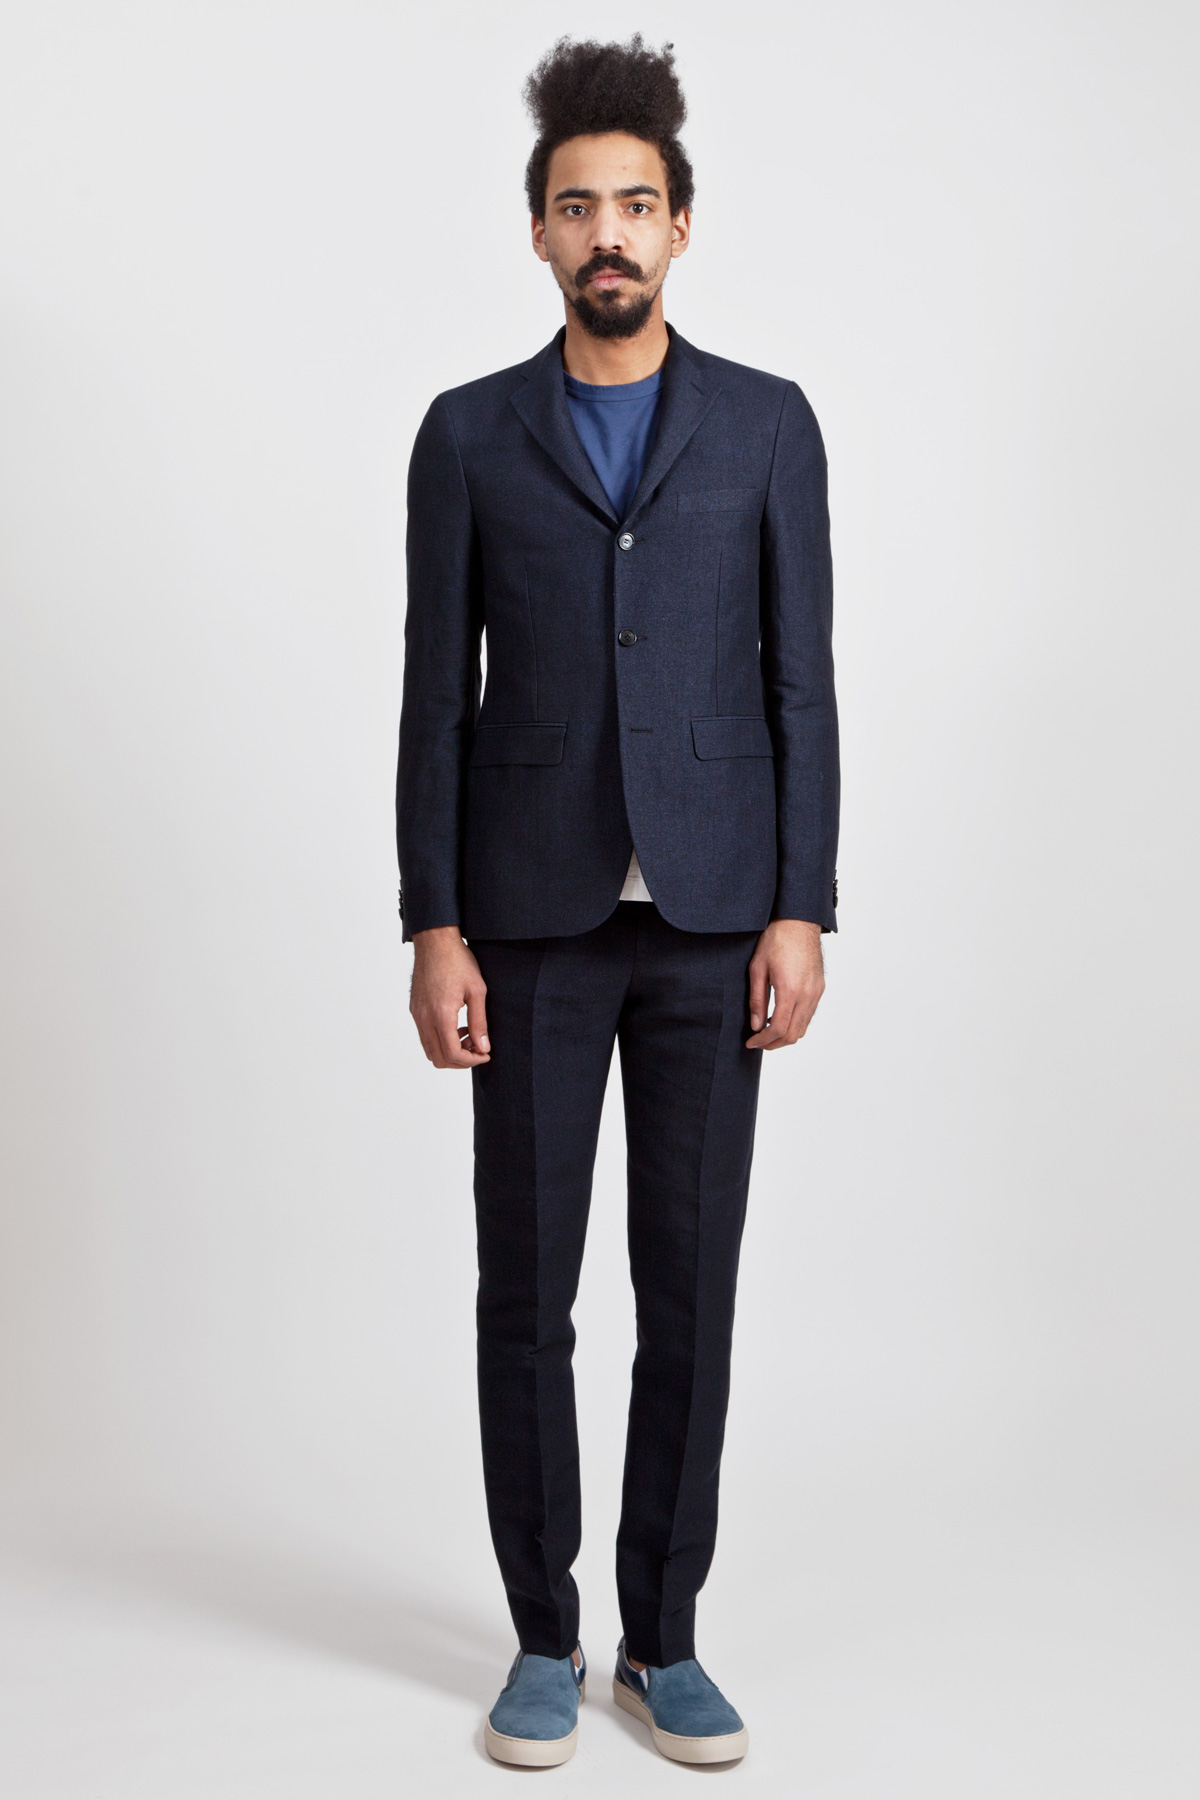 acne-suit-blazer-navy001